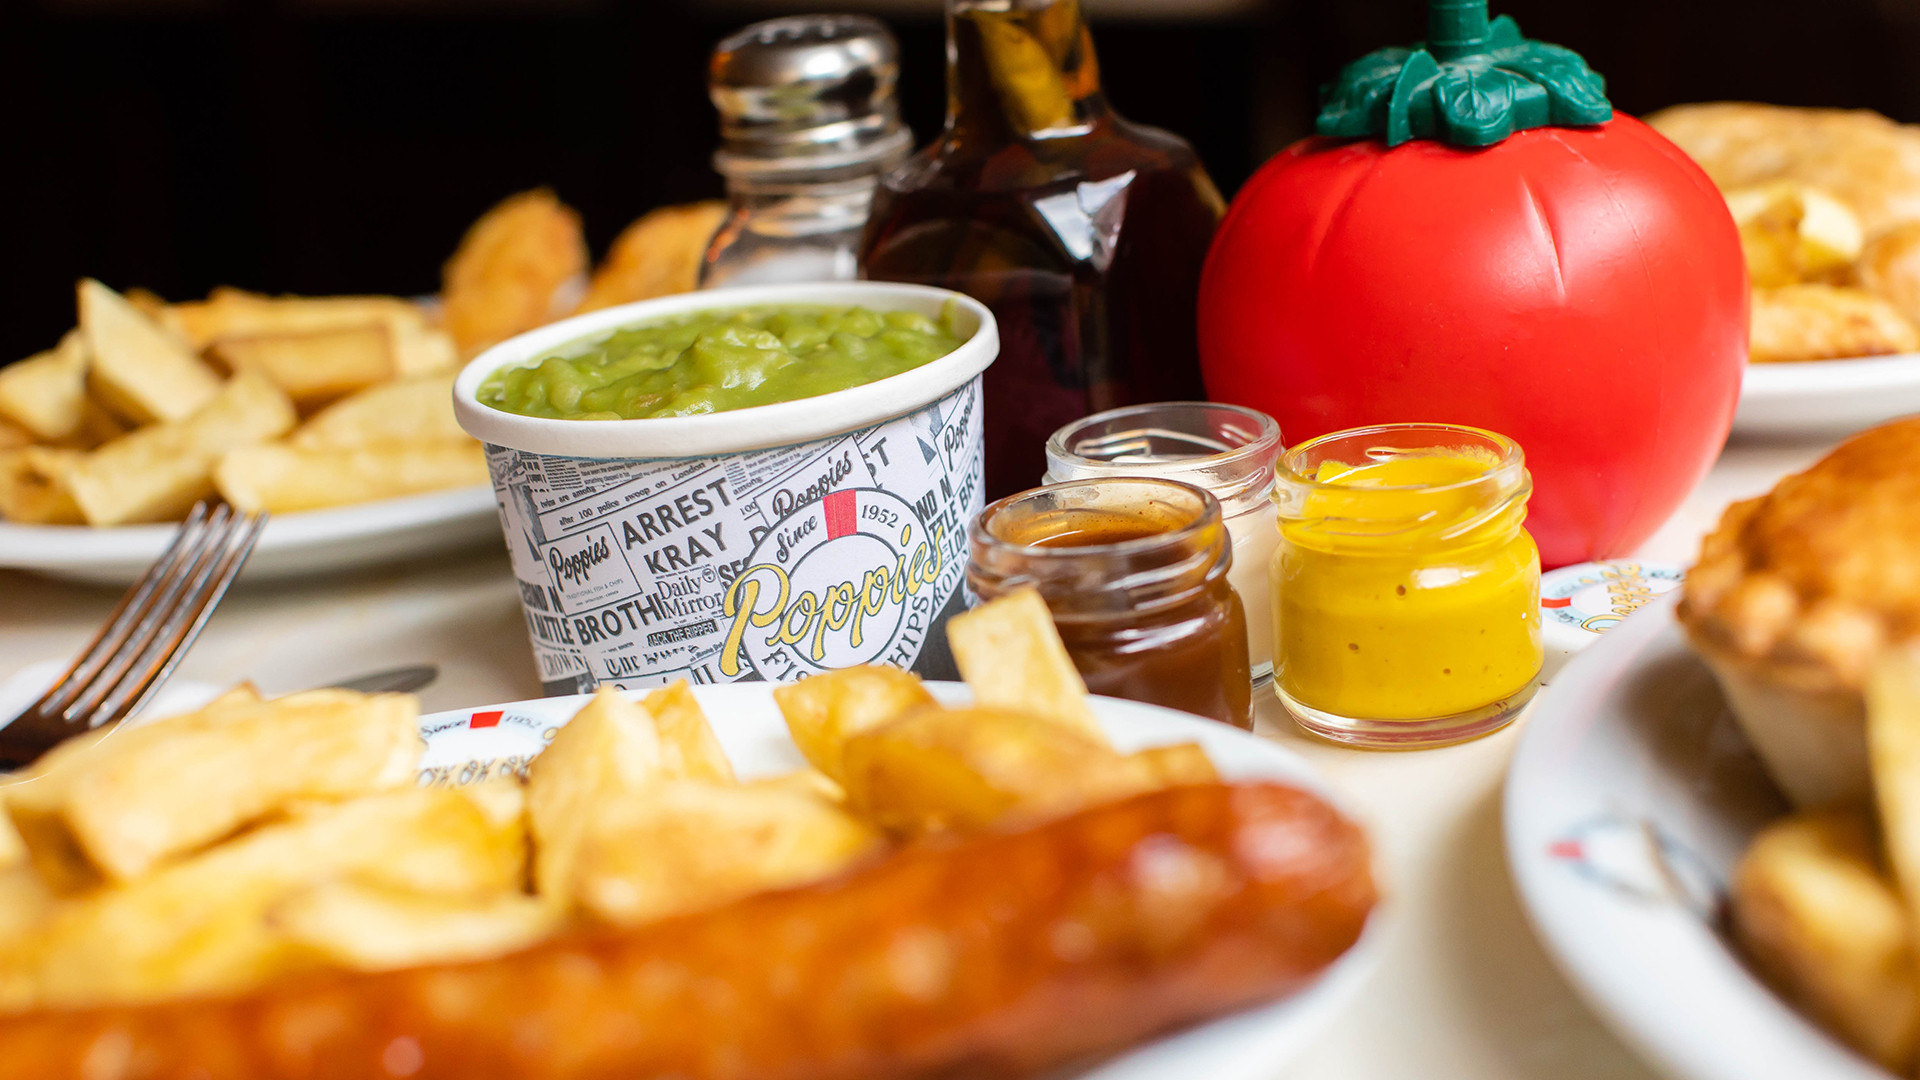 London's best fish and chips - Poppies